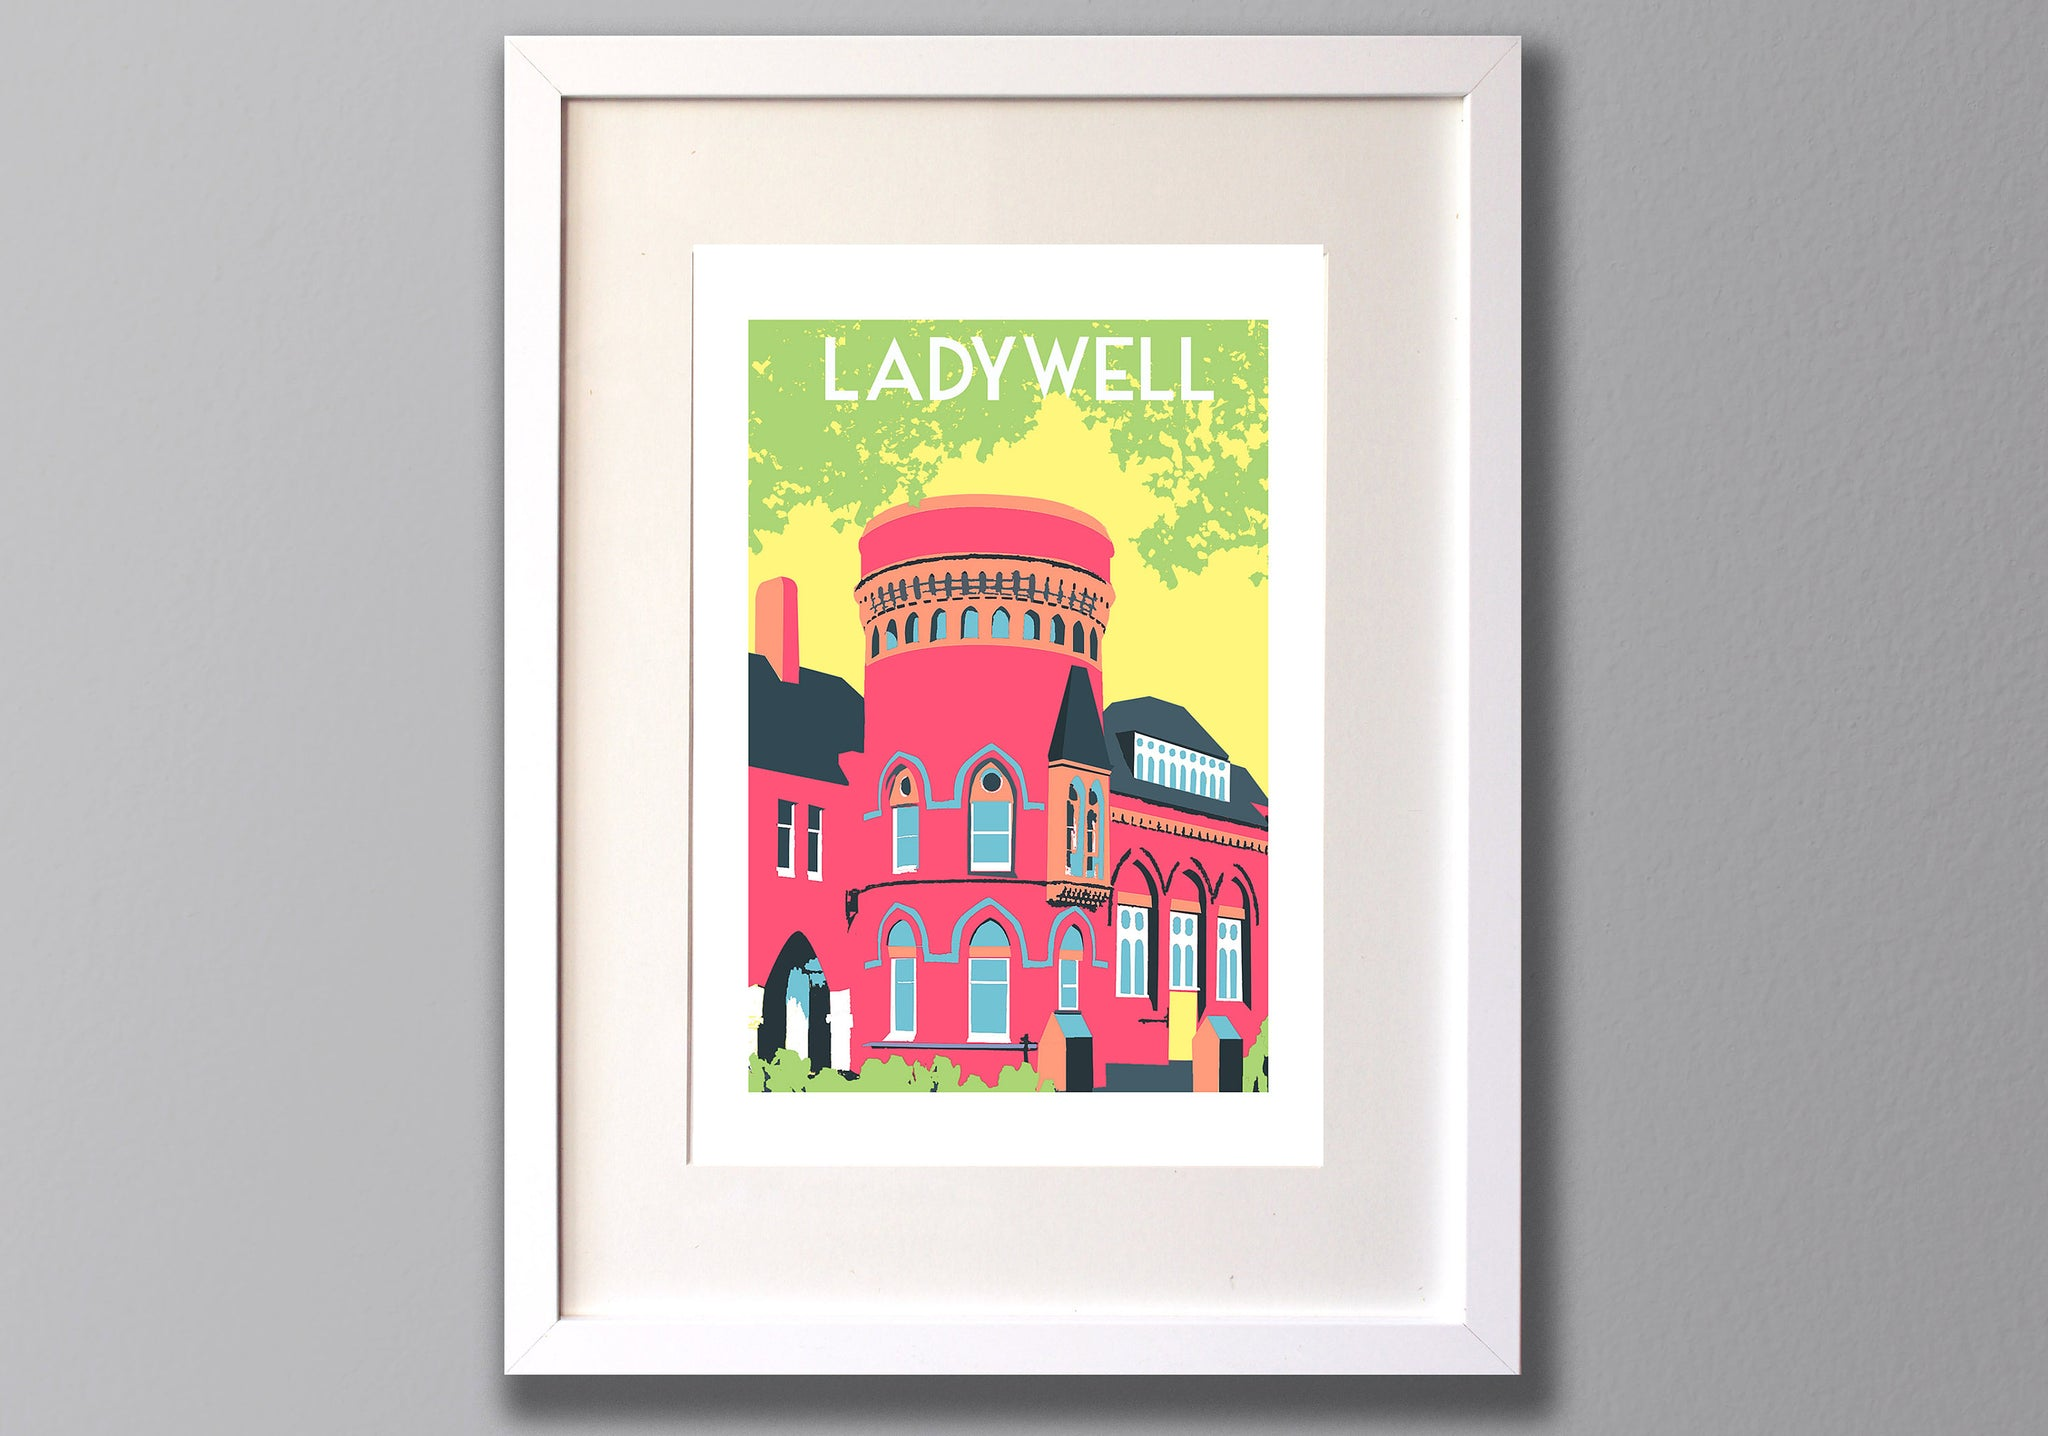 Ladywell Playtower Print, Limited Edition A3 Screen Print - Red Faces Prints